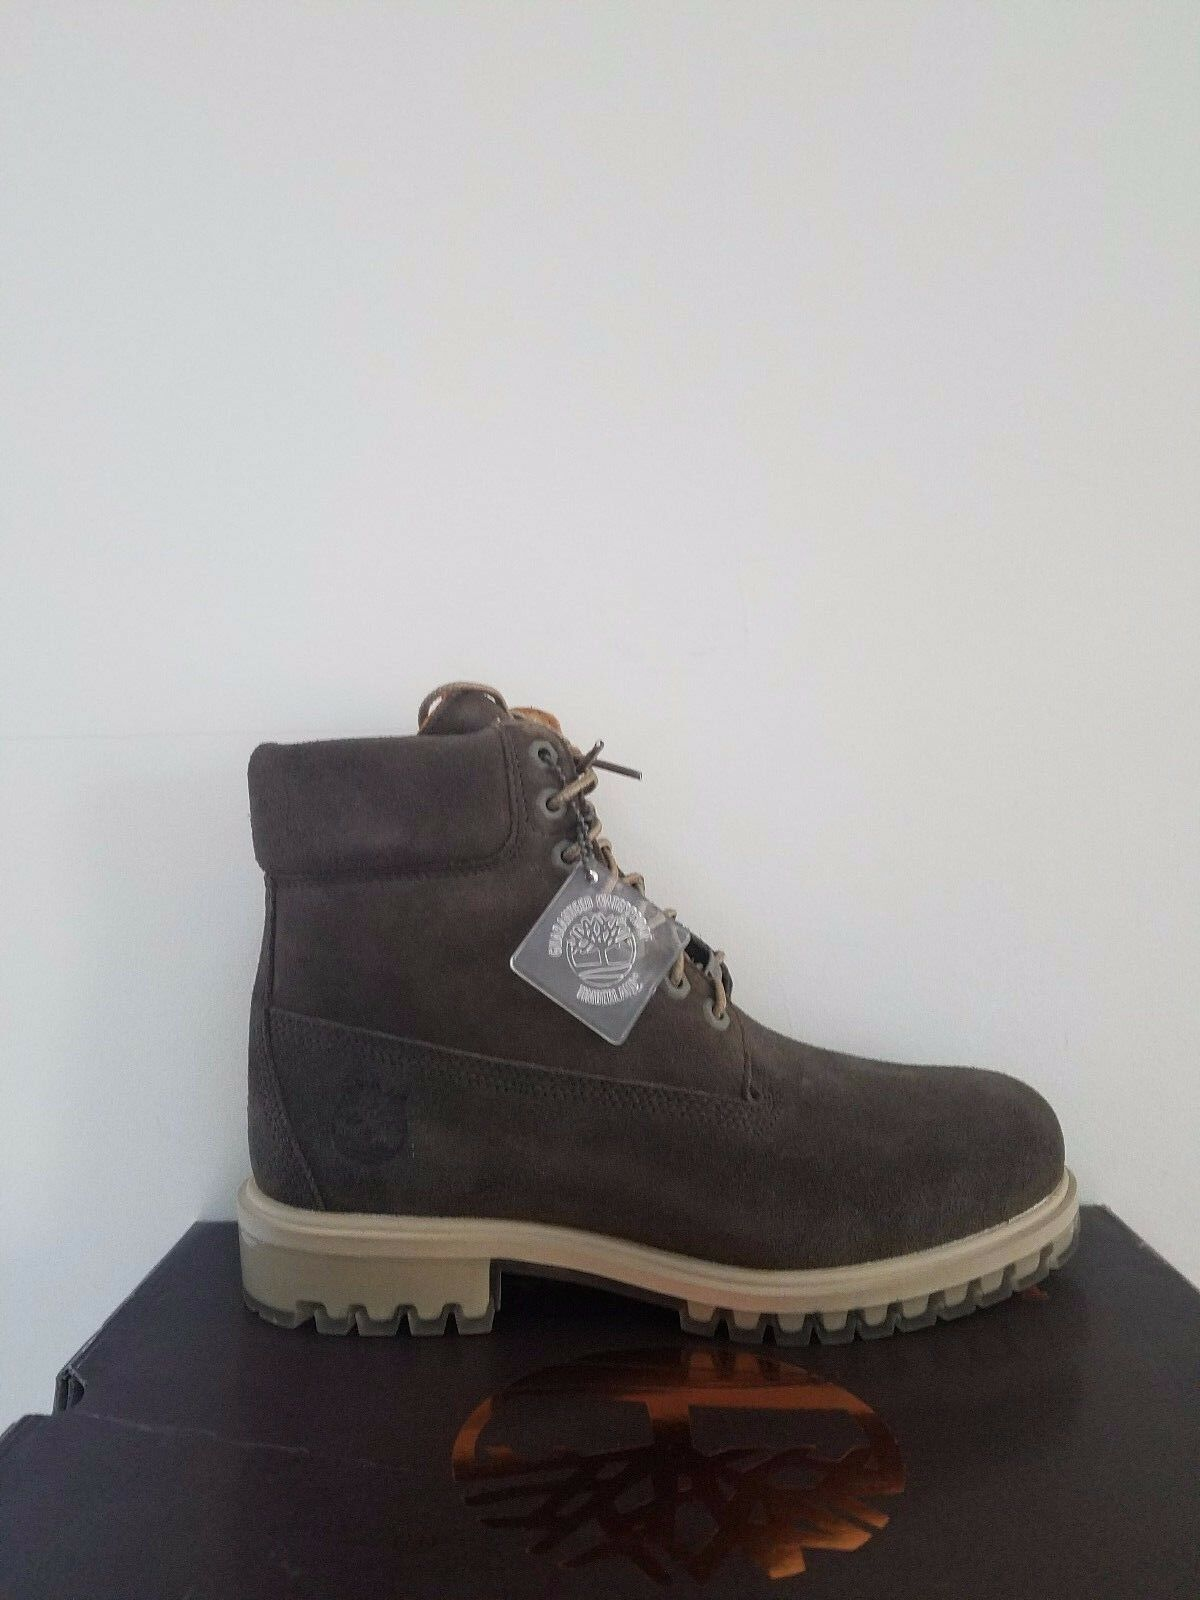 New Timberland Men's TPU 6-Inch Premium Waterproof Boots Limited Edition NIB